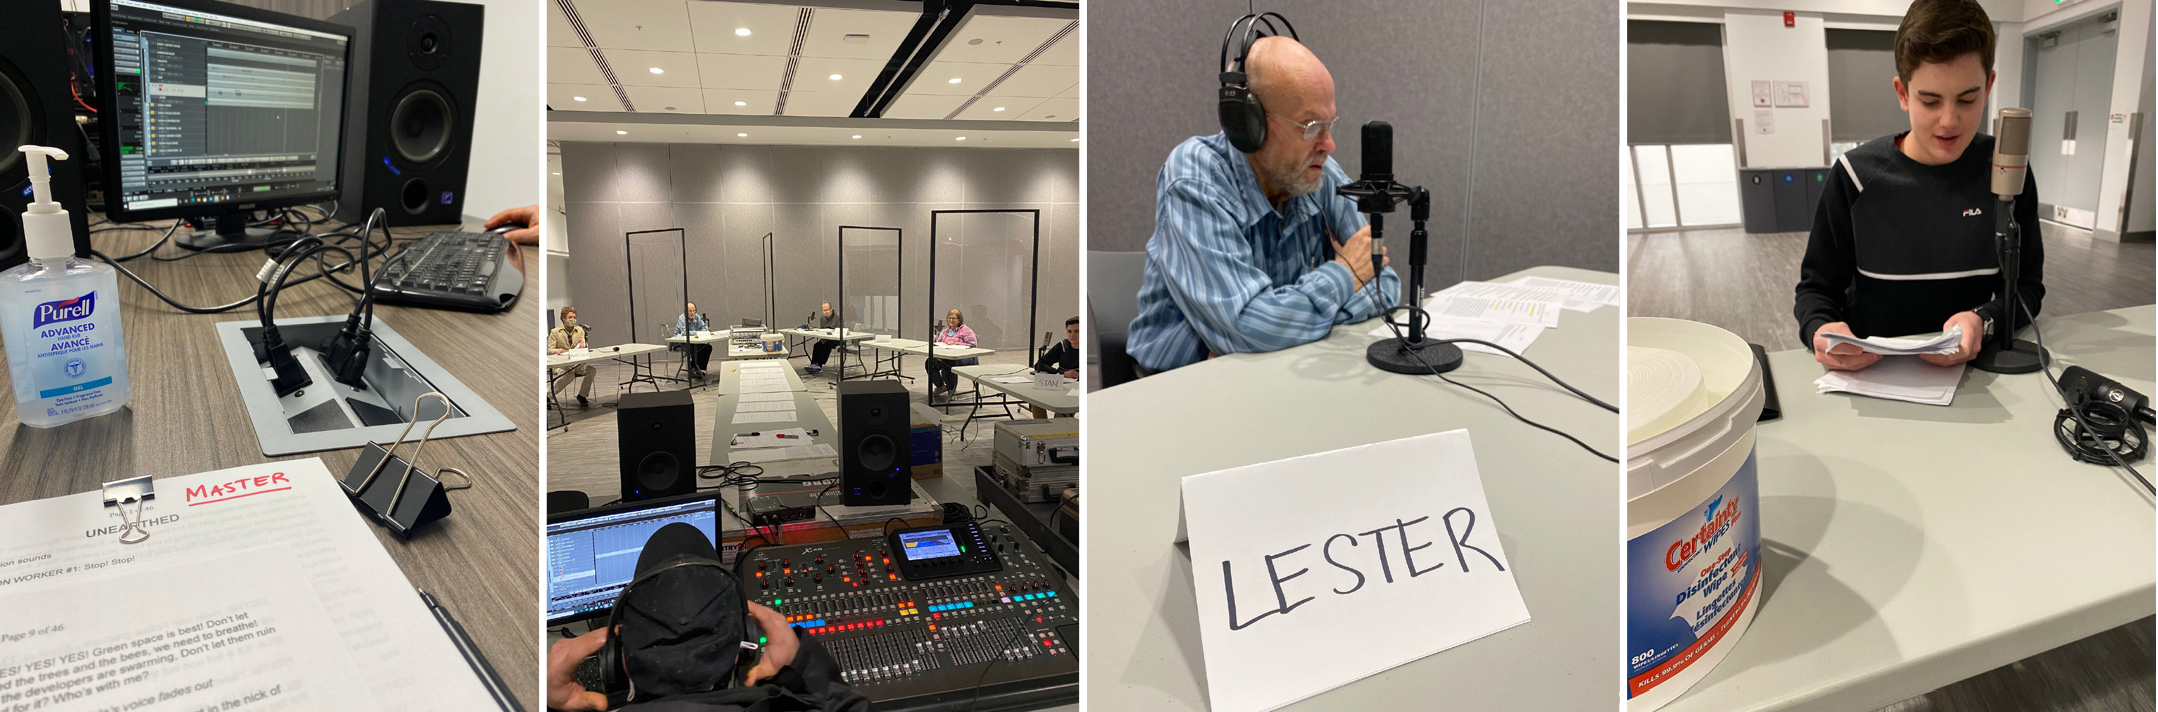 collage image of podcast set up and recording